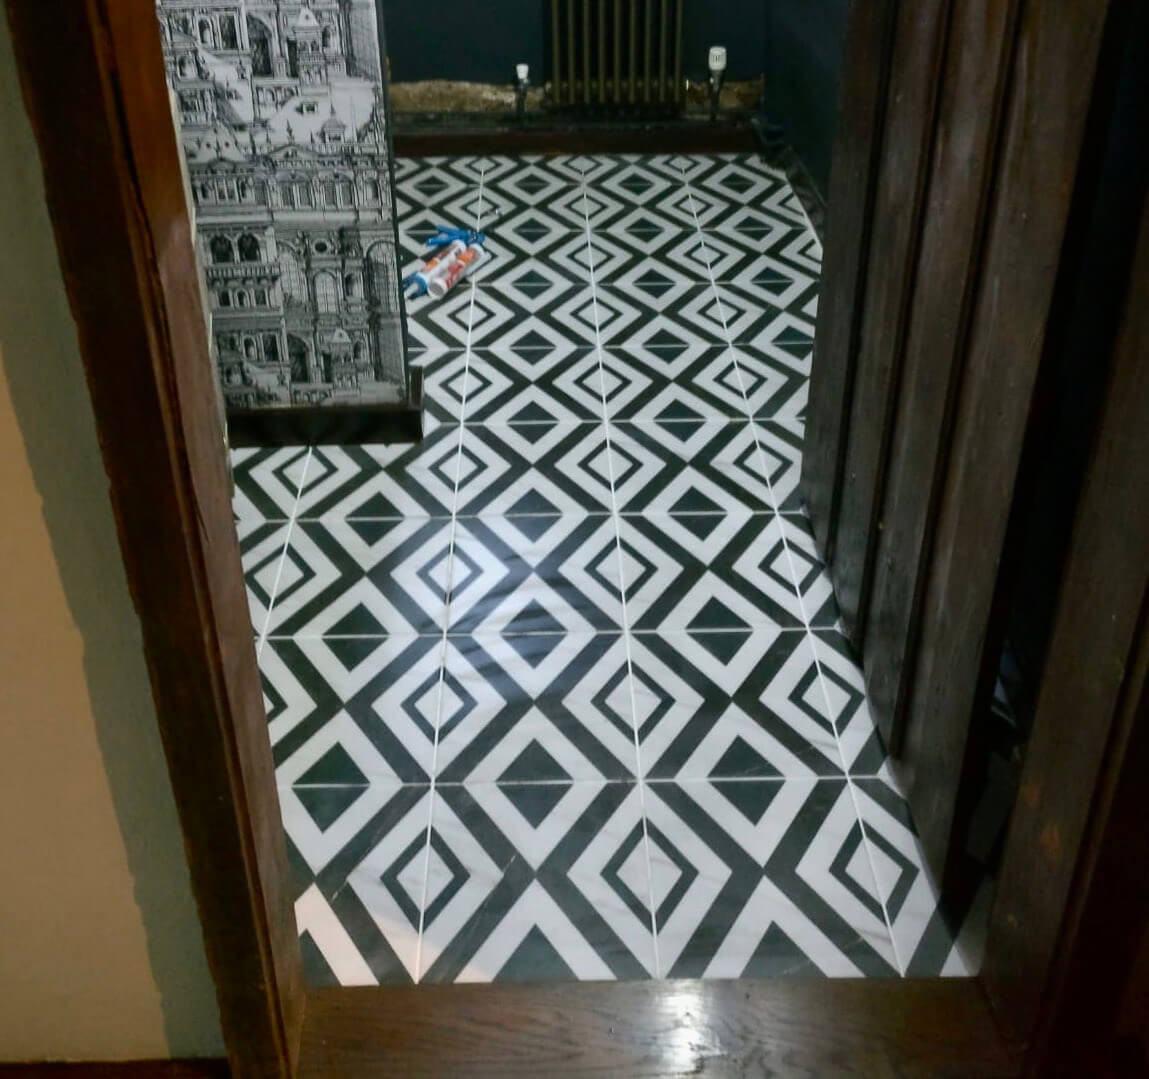 Tiled Floor.jpeg